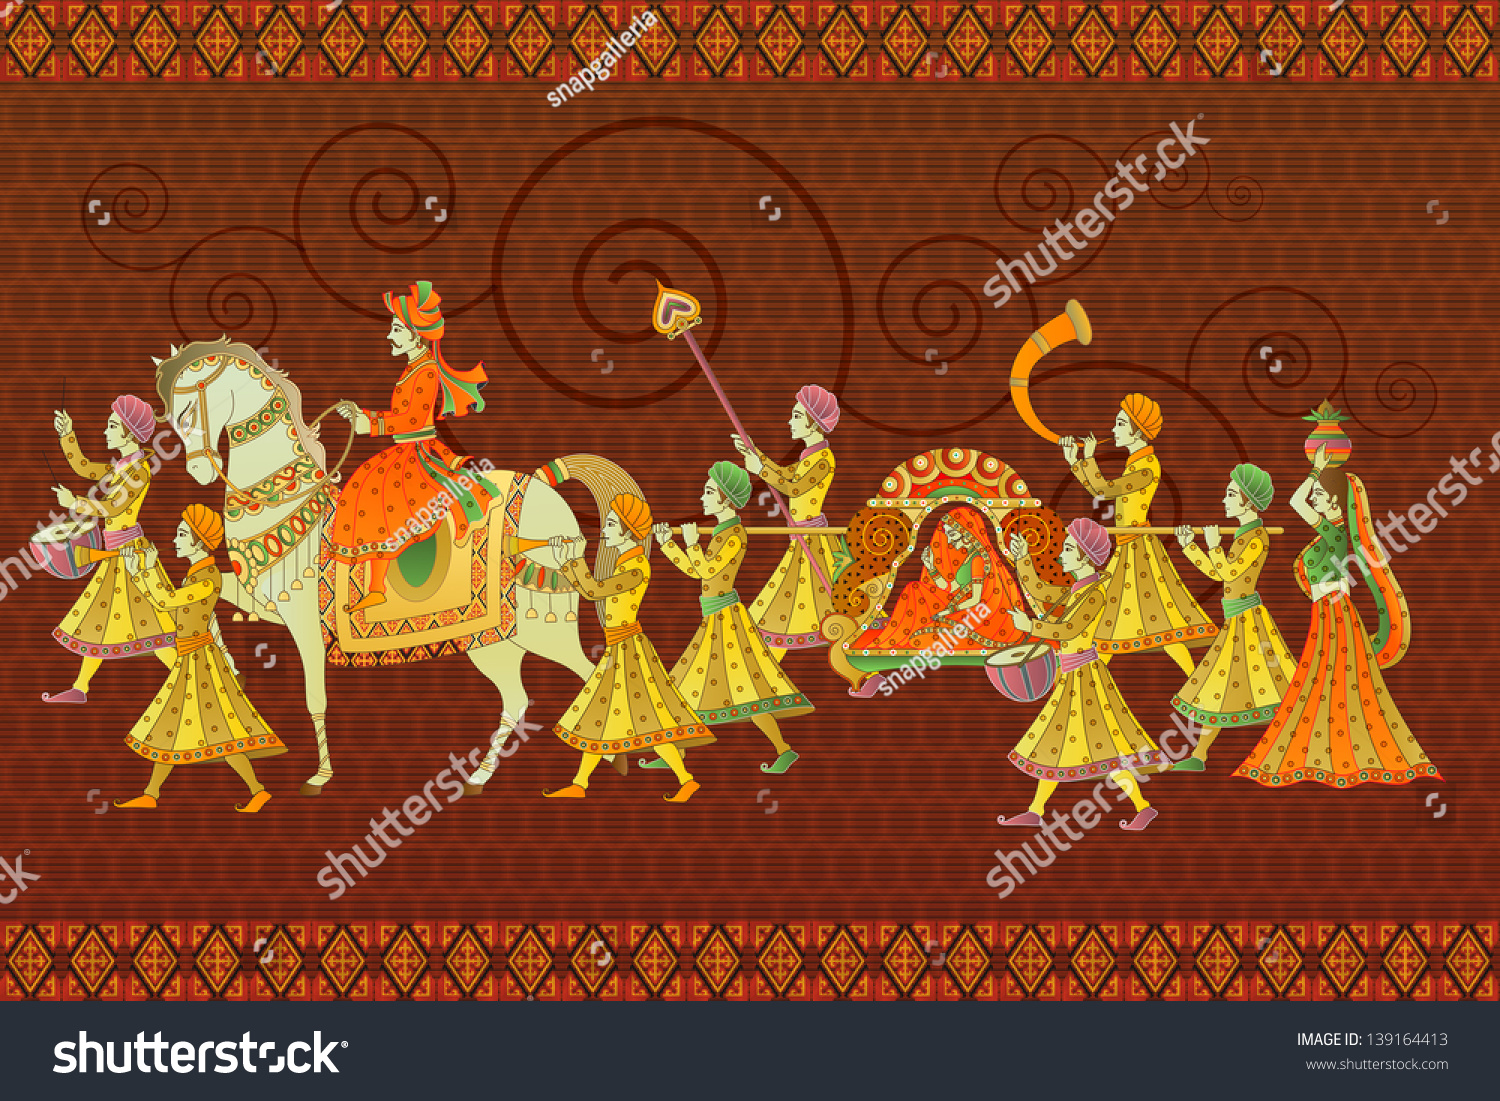 Easy Edit Vector Illustration Traditional Indian Stock Vector 139164413